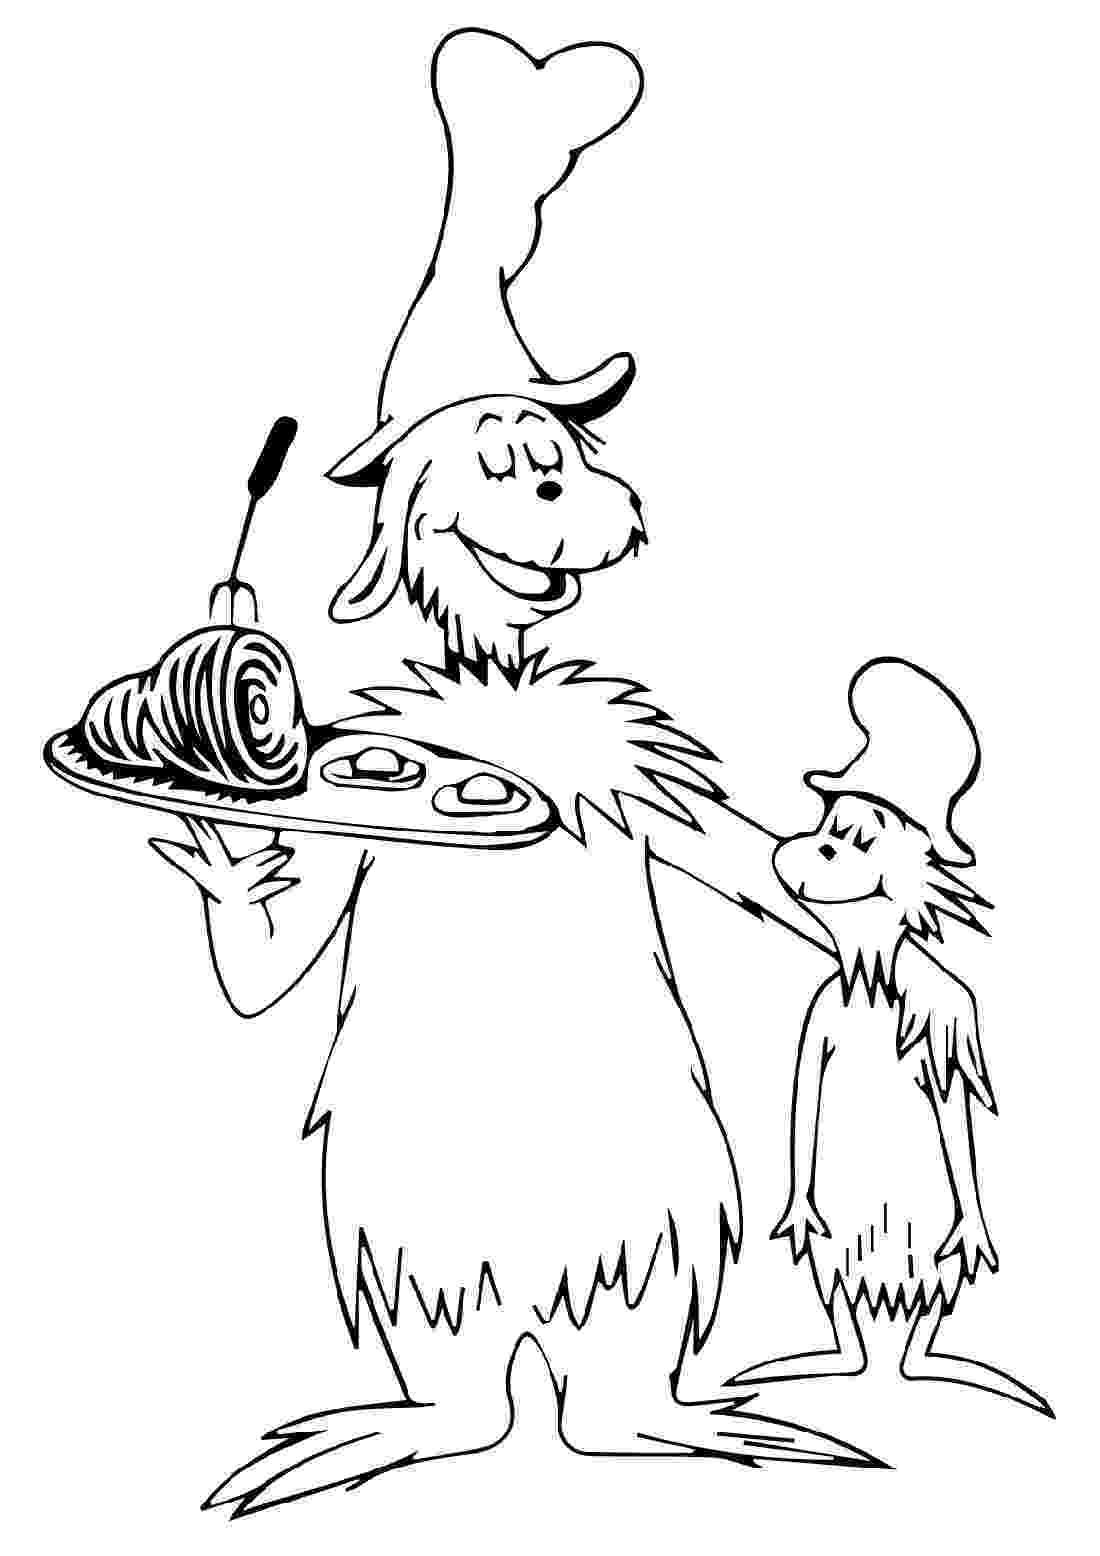 green eggs and ham coloring sheet green eggs and ham coloring page coloring home coloring green sheet ham eggs and